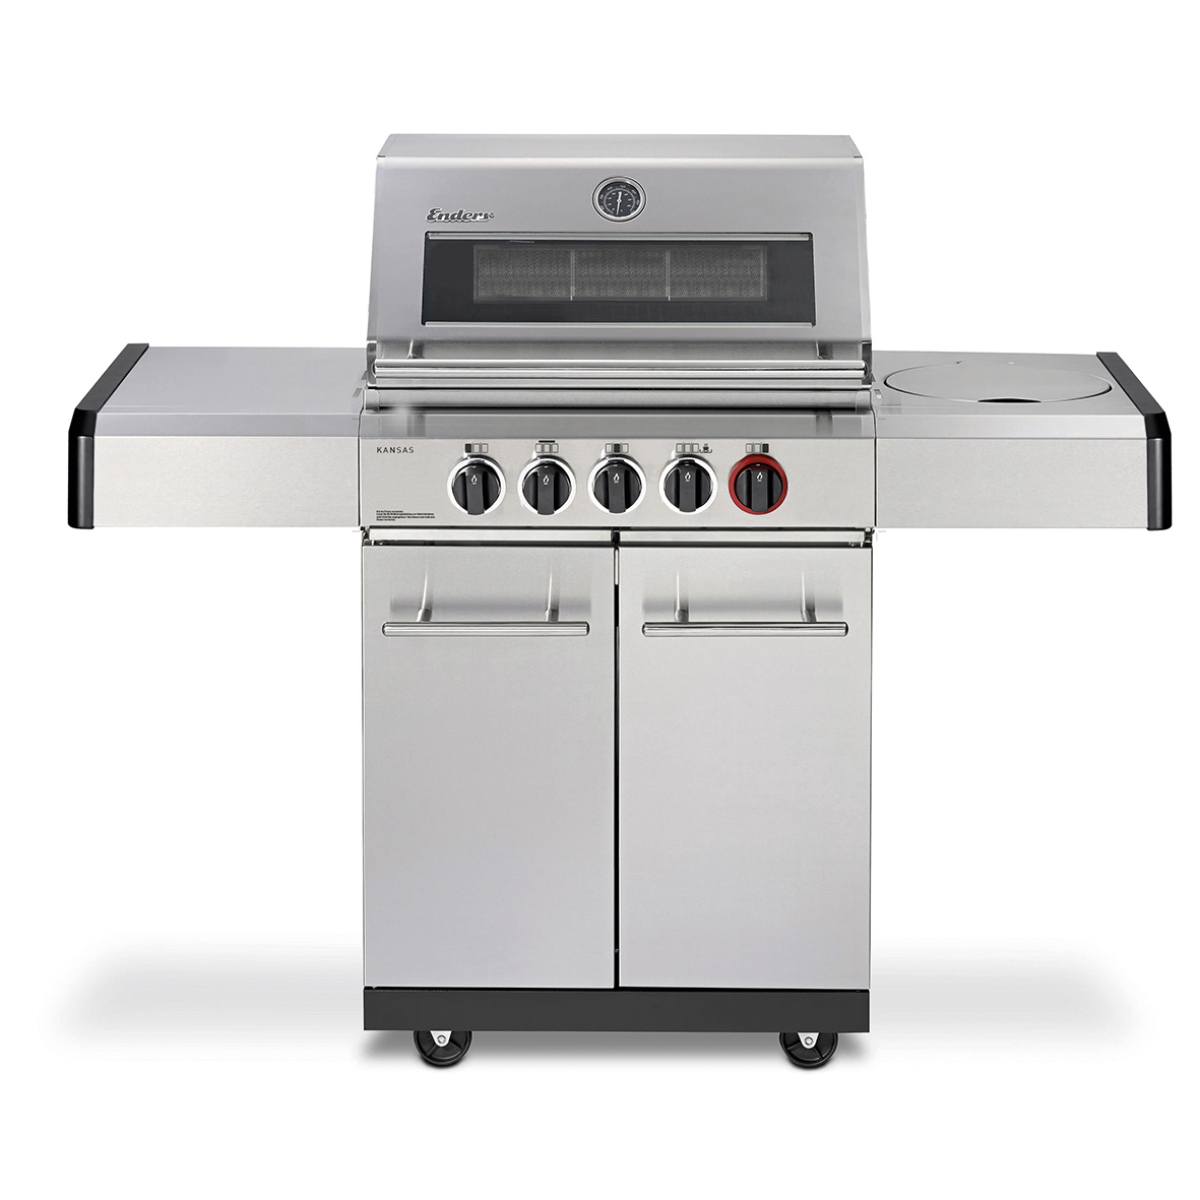 Enders Outdoor Küche Kansas Pro 4 Sik Profi Turbo Enders Kansas Pro 3 Sik Turbo Edelstahl Gasgrill Mit